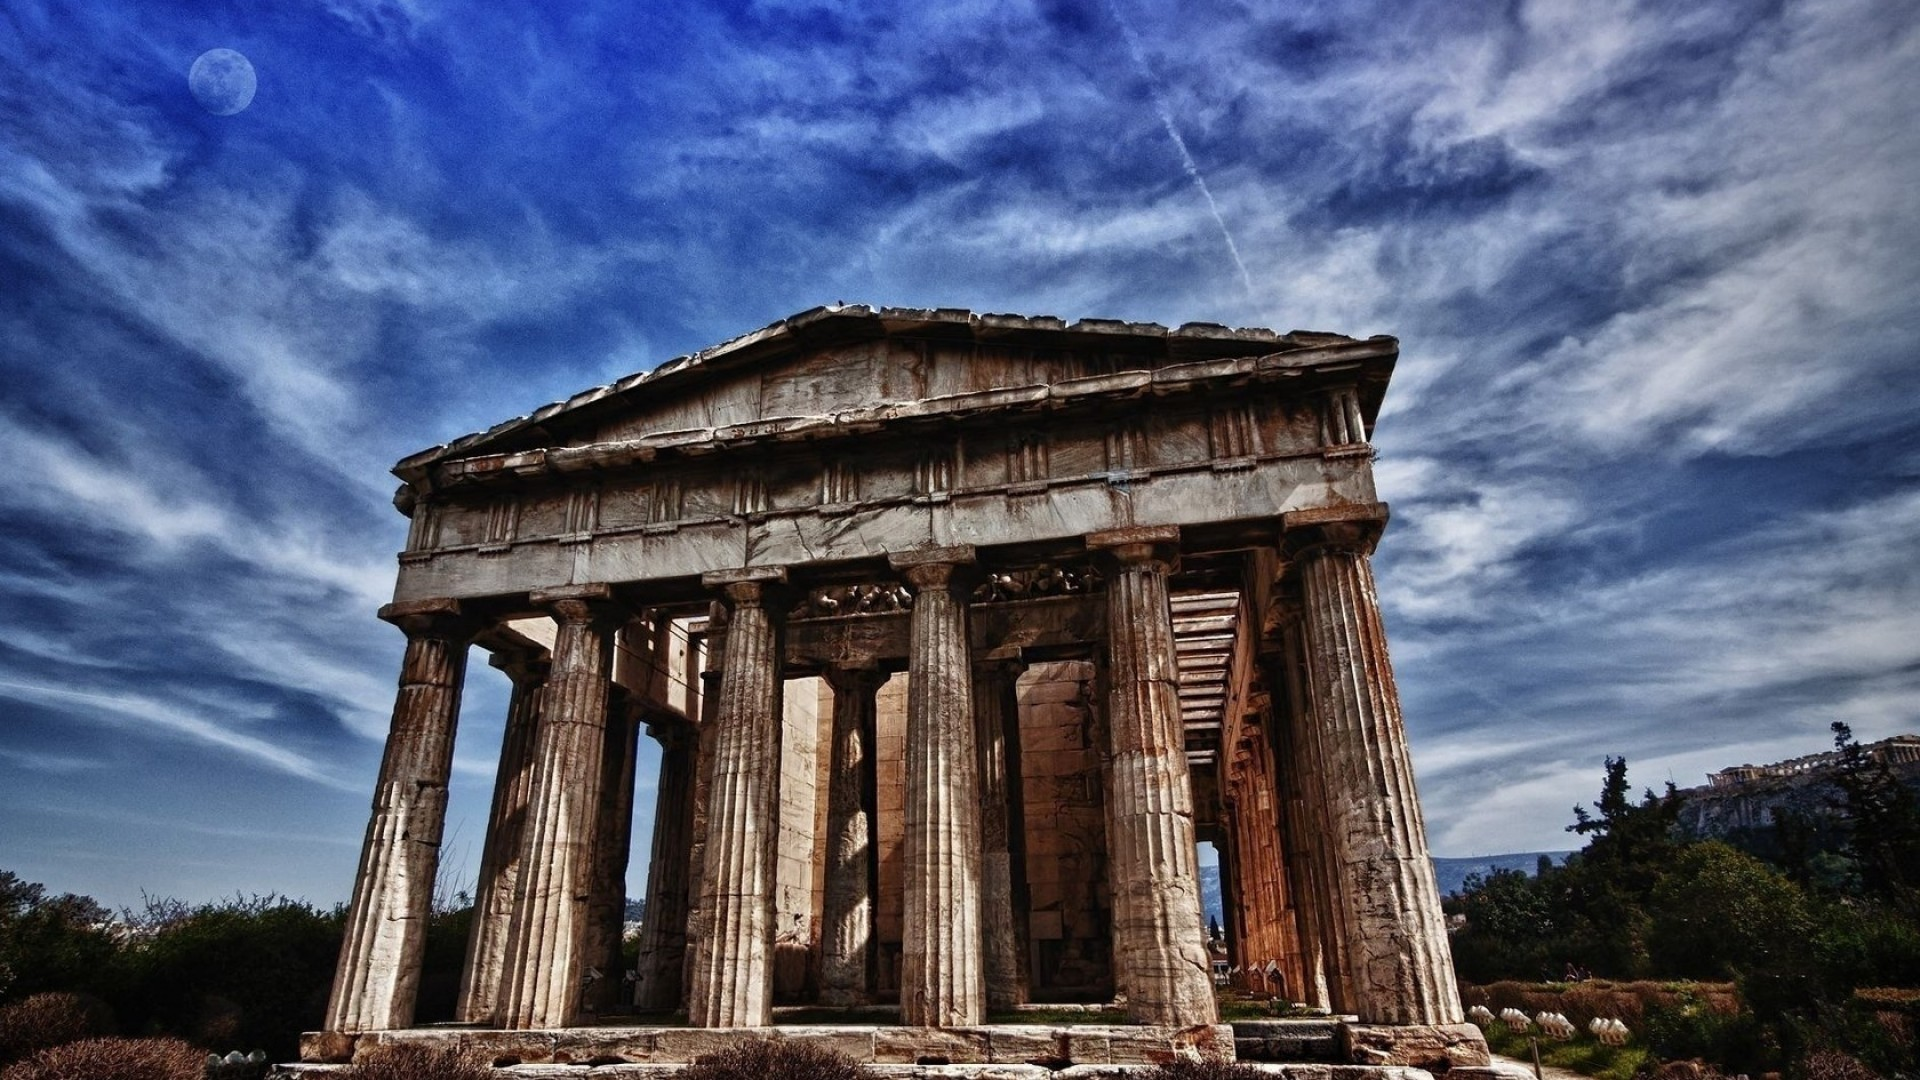 greek architecture wallpapers definition greece buildings columns athens temple classical architect parthenon architects